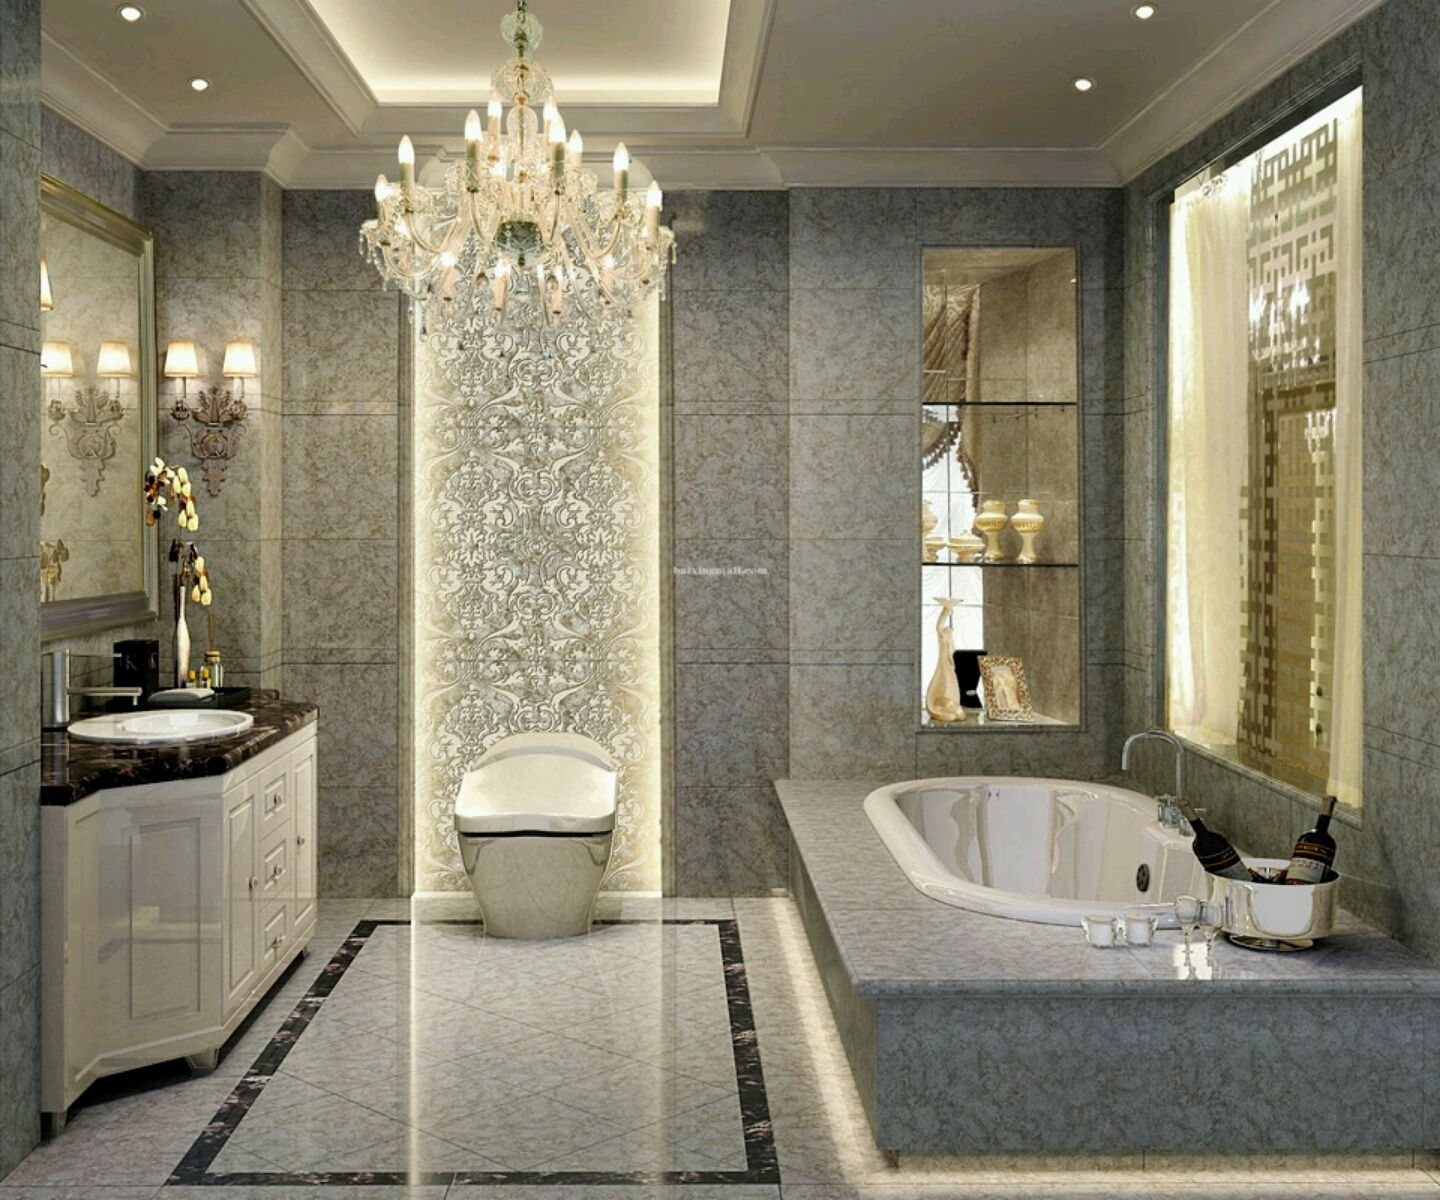 Luxury bathroom layout - Bathroom